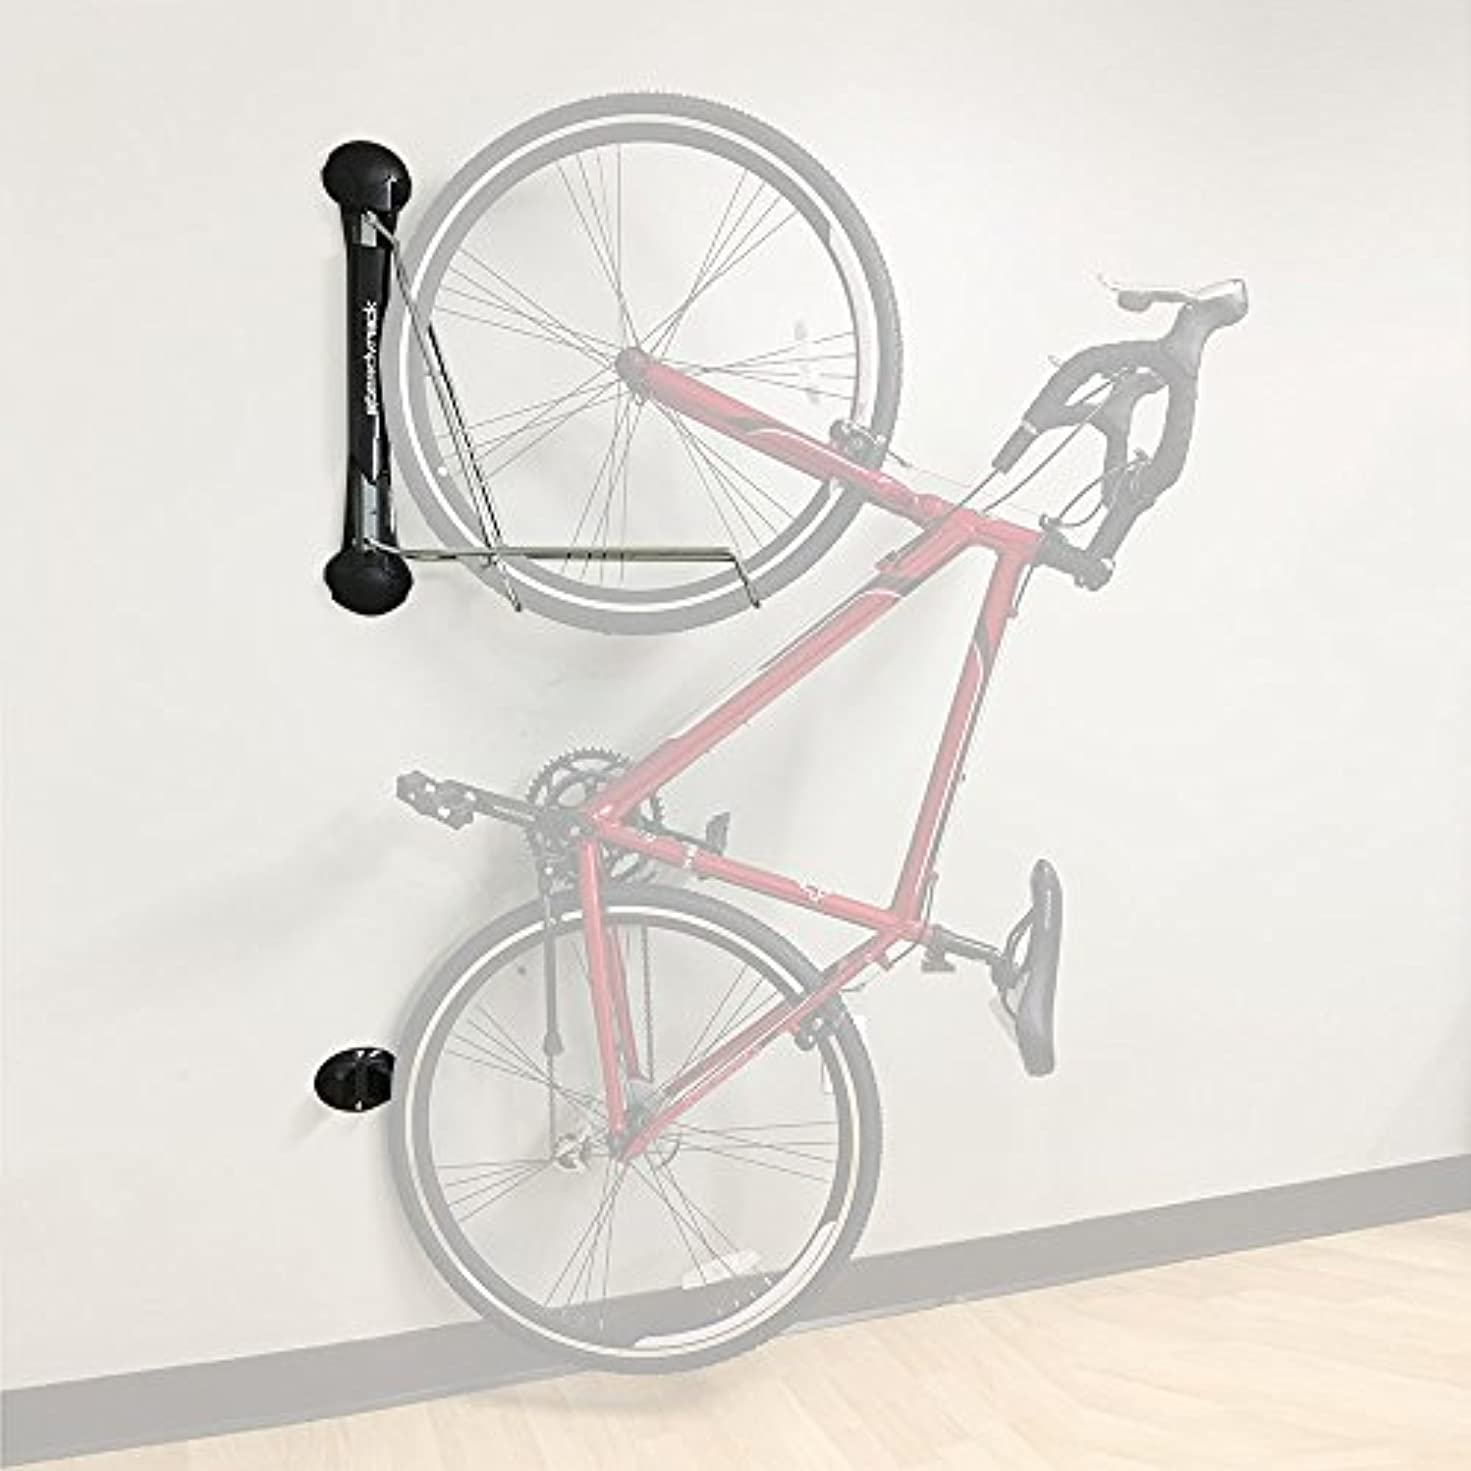 魅惑する殺す教えてSteadyrack Bike Rack - Vertical Wall Mount